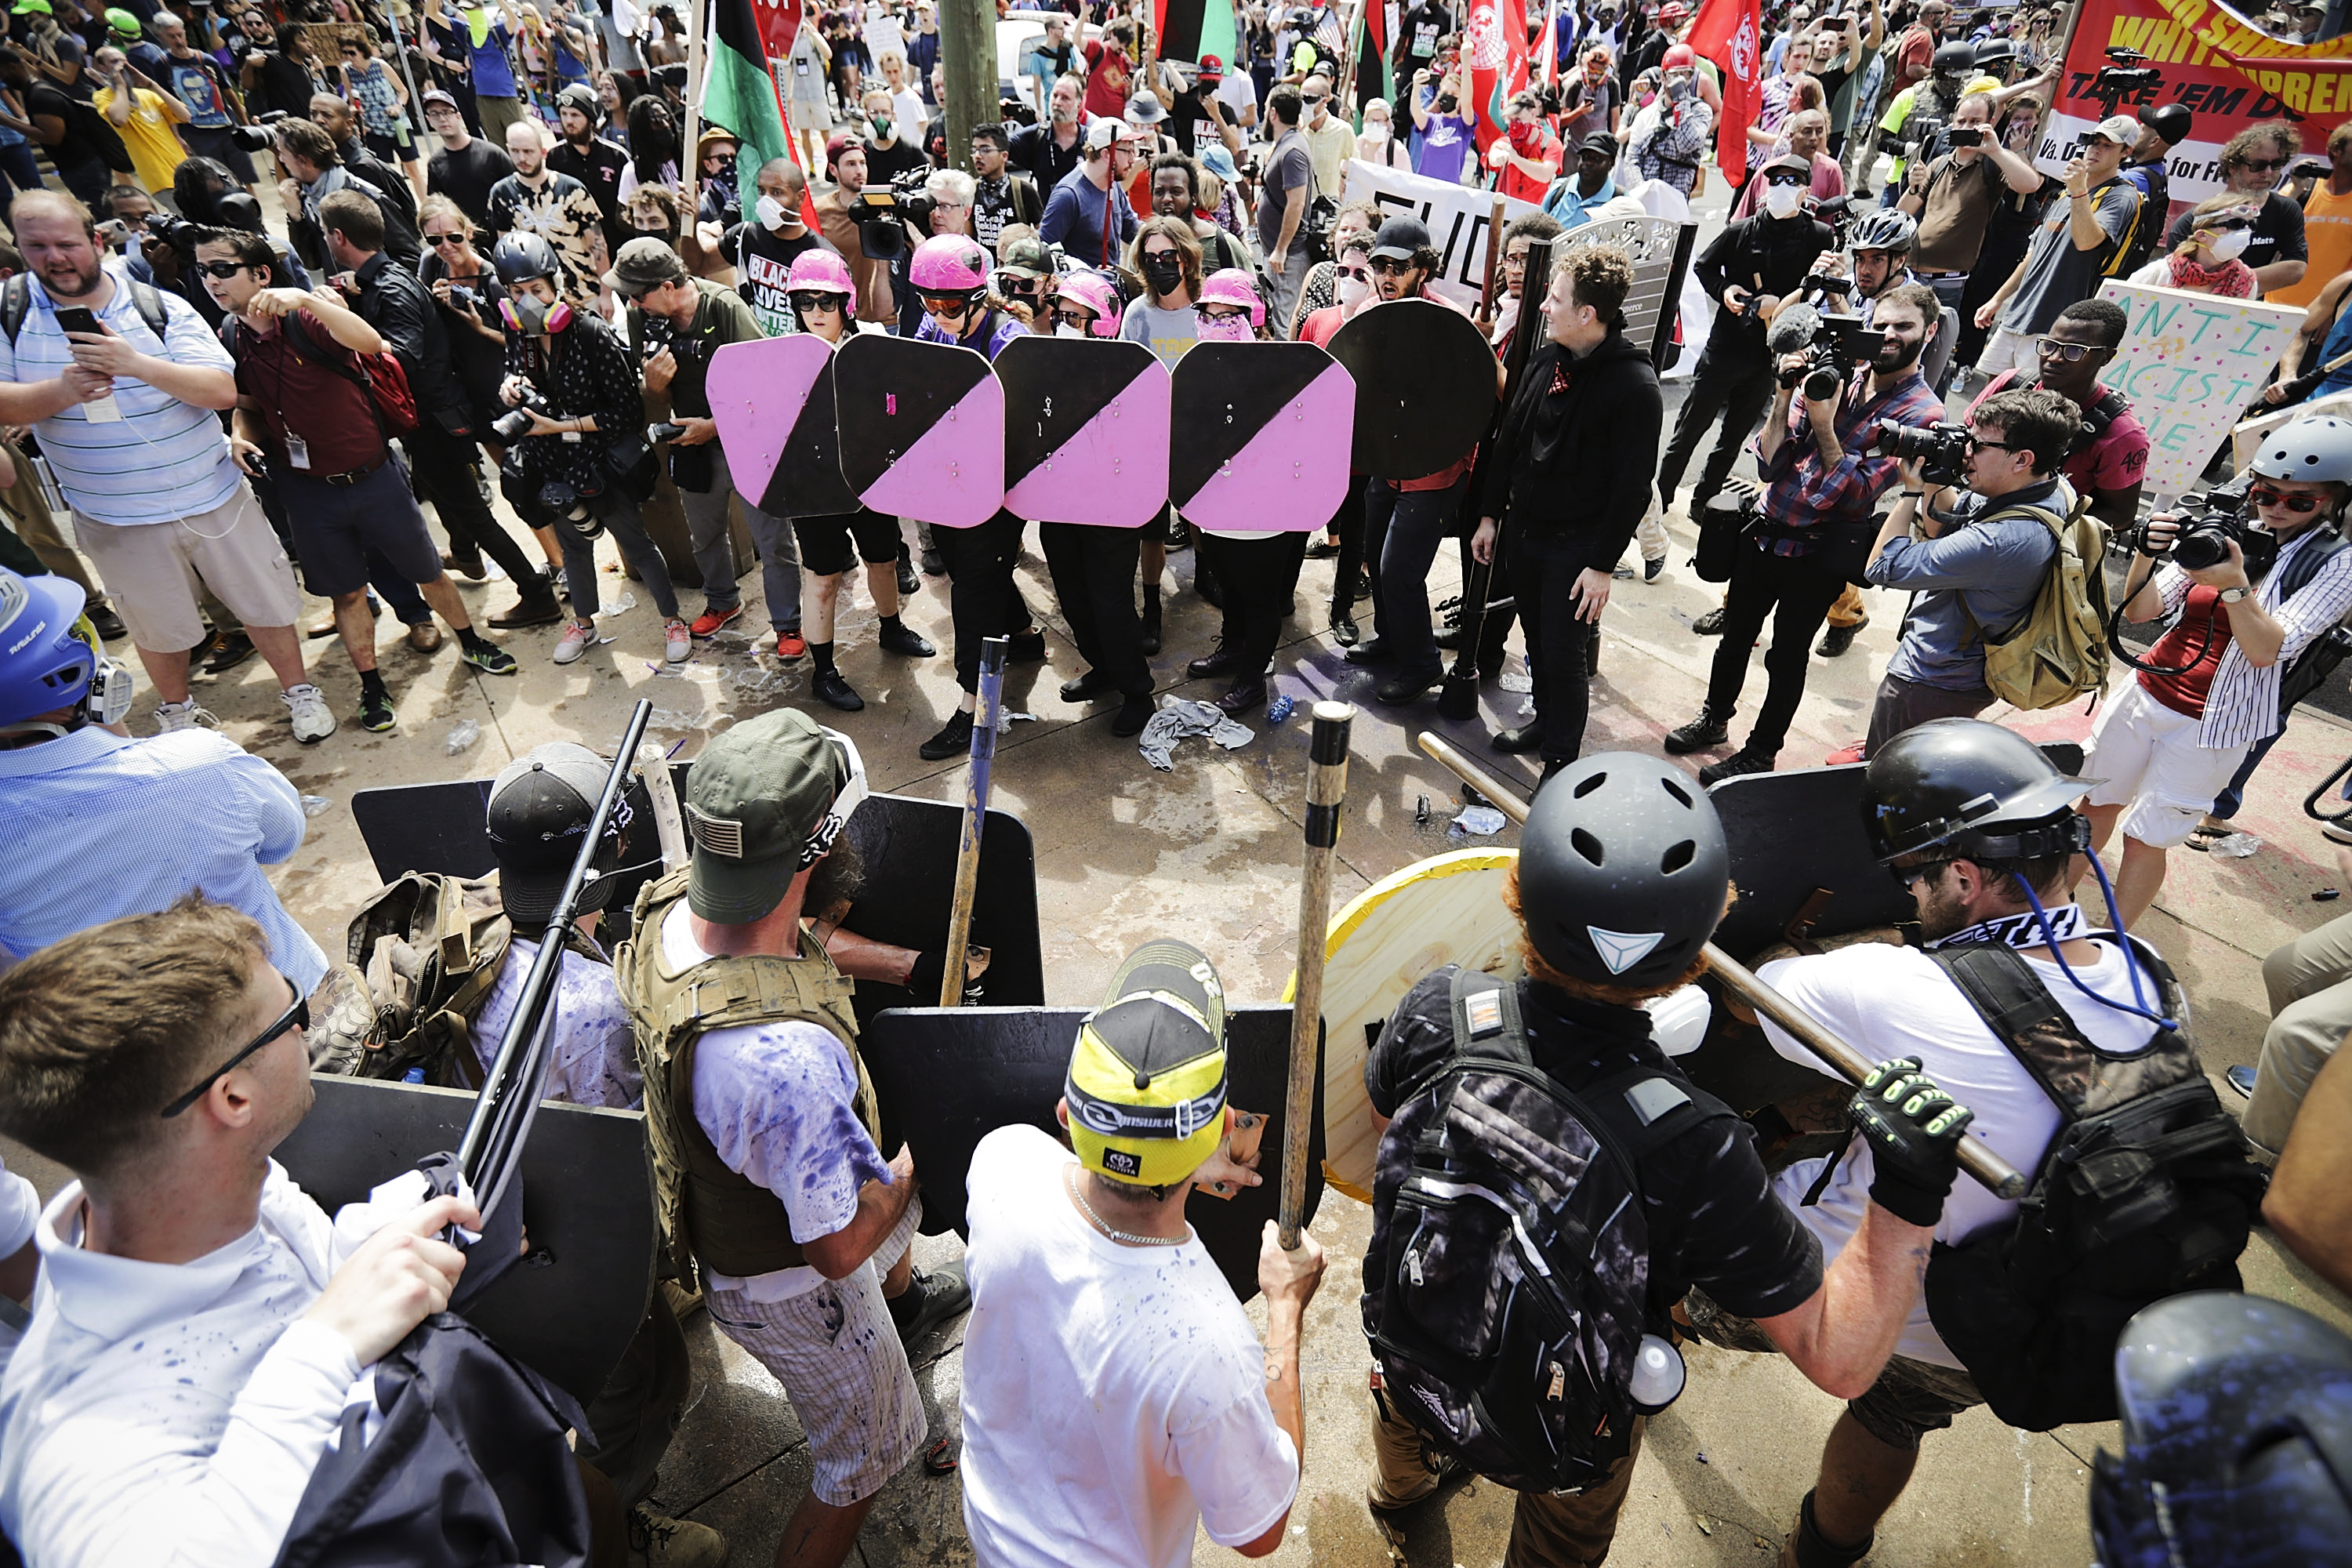 """Battle lines form between white nationalists, neo-Nazis, members of the """"alt-right,"""" and anti-fascist counterprotesters during the """"Unite the Right"""" rally in Charlottesville, Virginia, on August 12, 2017."""